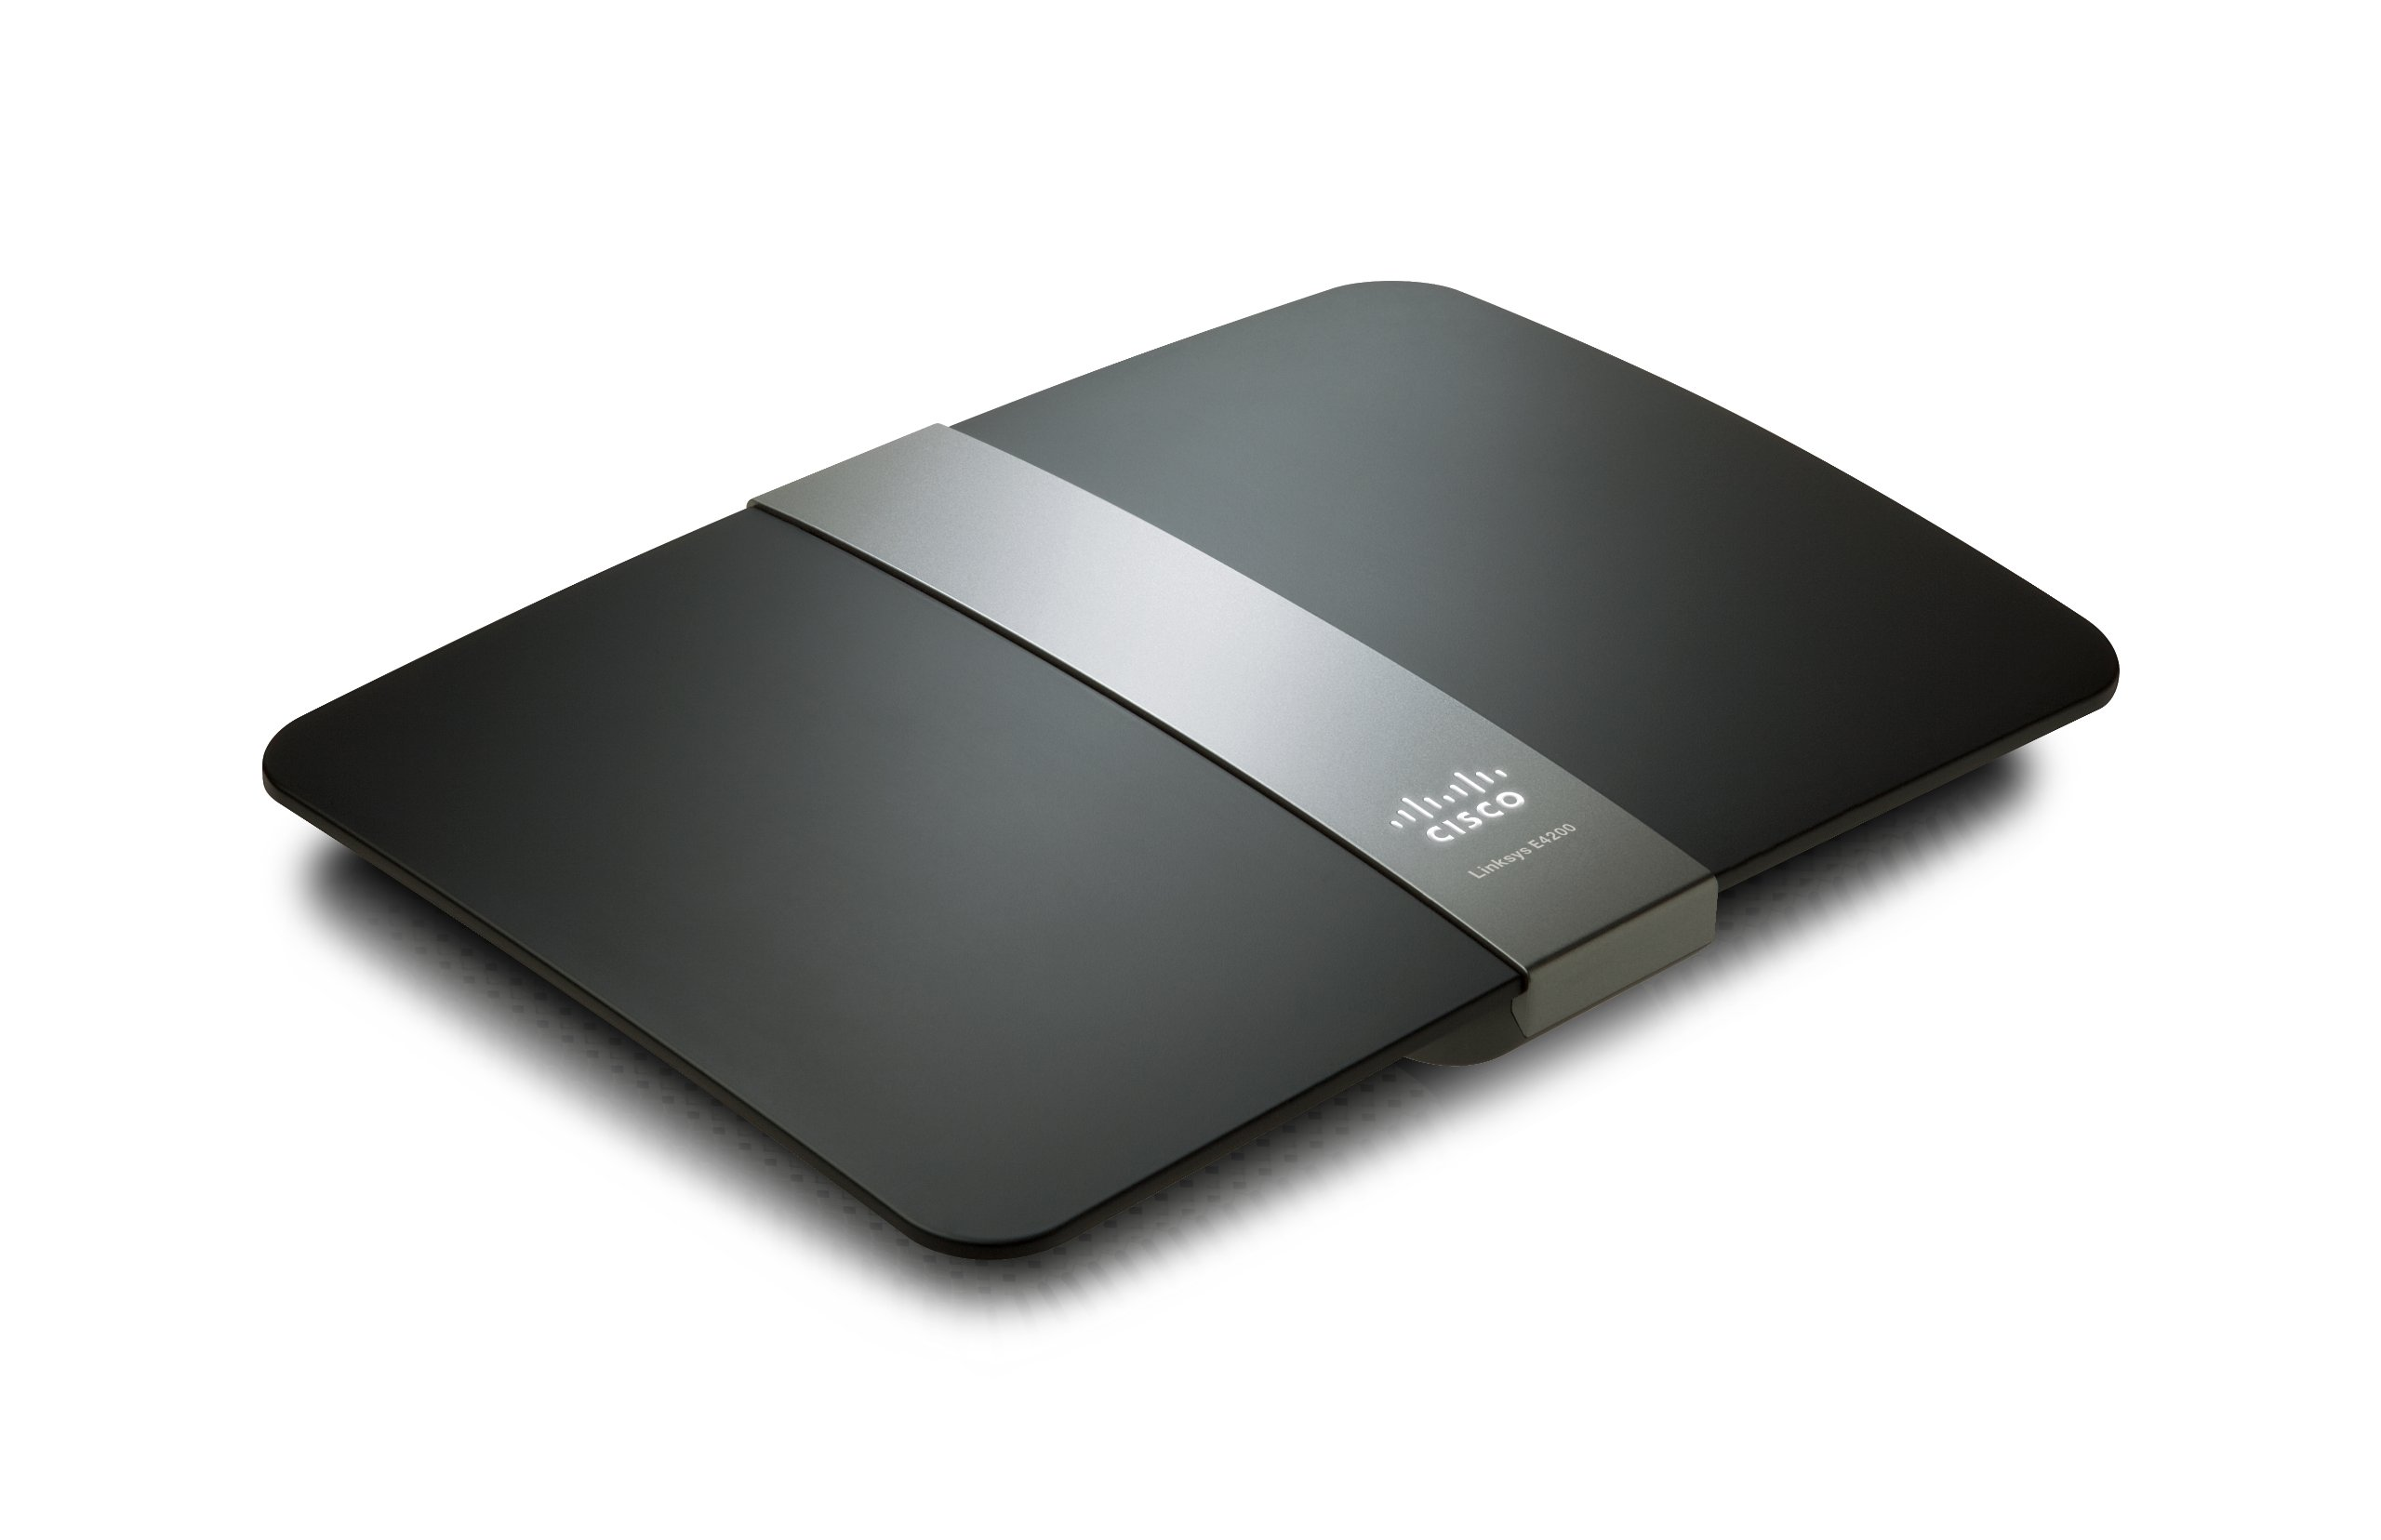 Linksys Maximum Performance Dual-Band N900 Router (E4200 v2) by Linksys